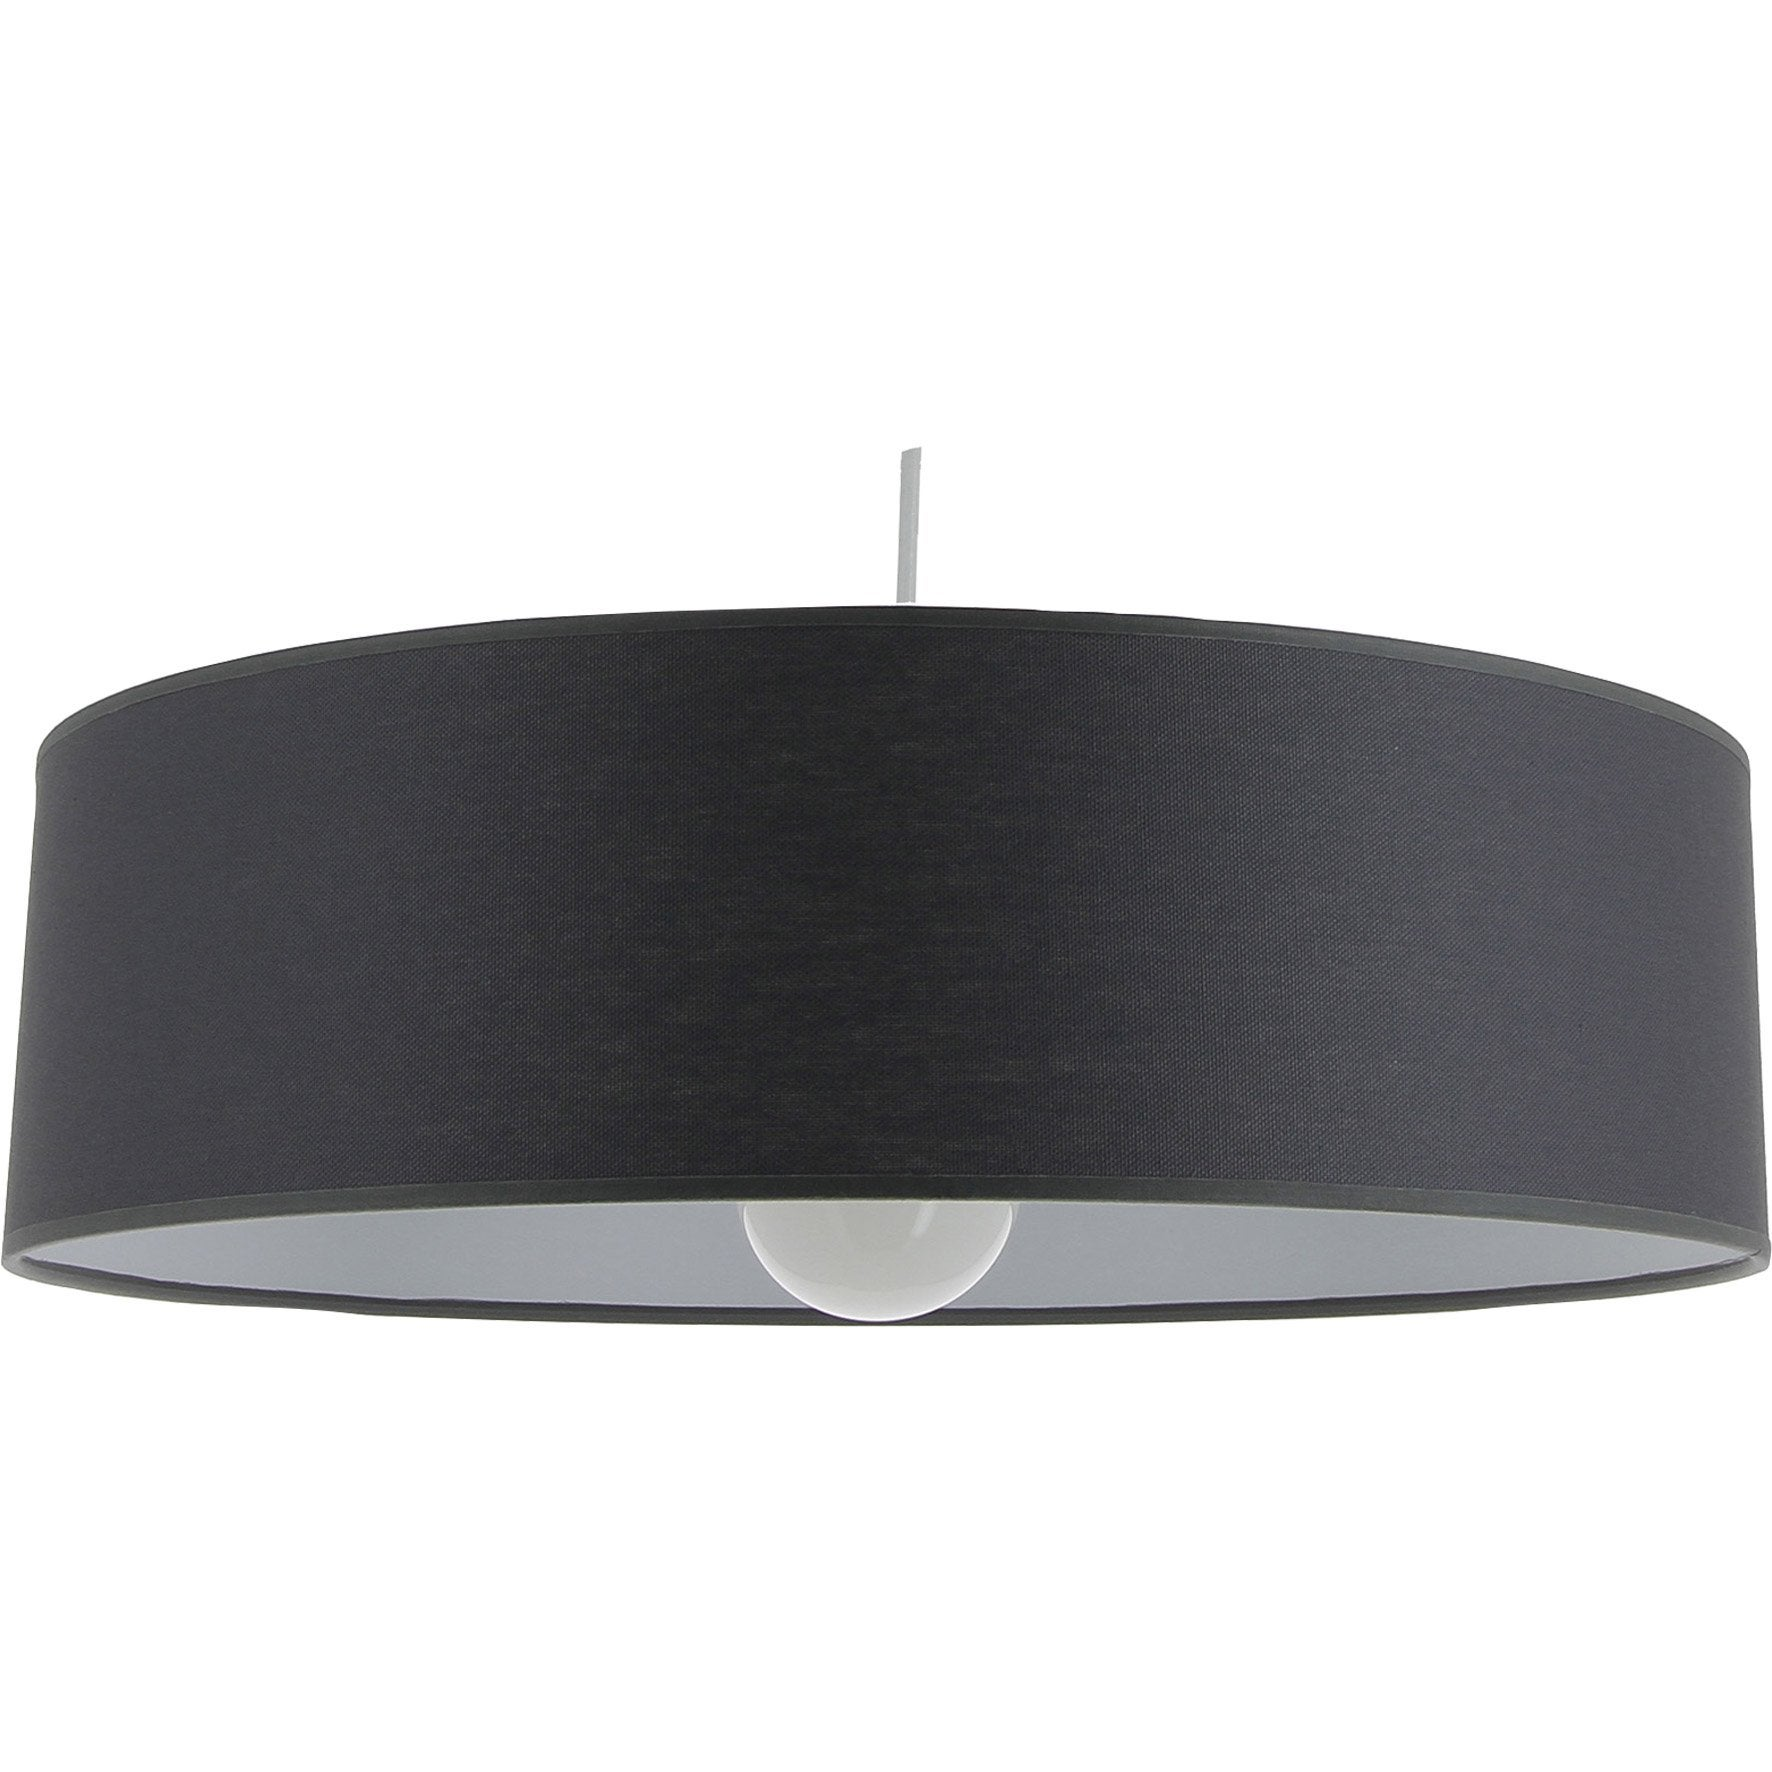 Suspension, e27 design Natt Slim coton gris galet 1 x 60 W METROPOLIGHT